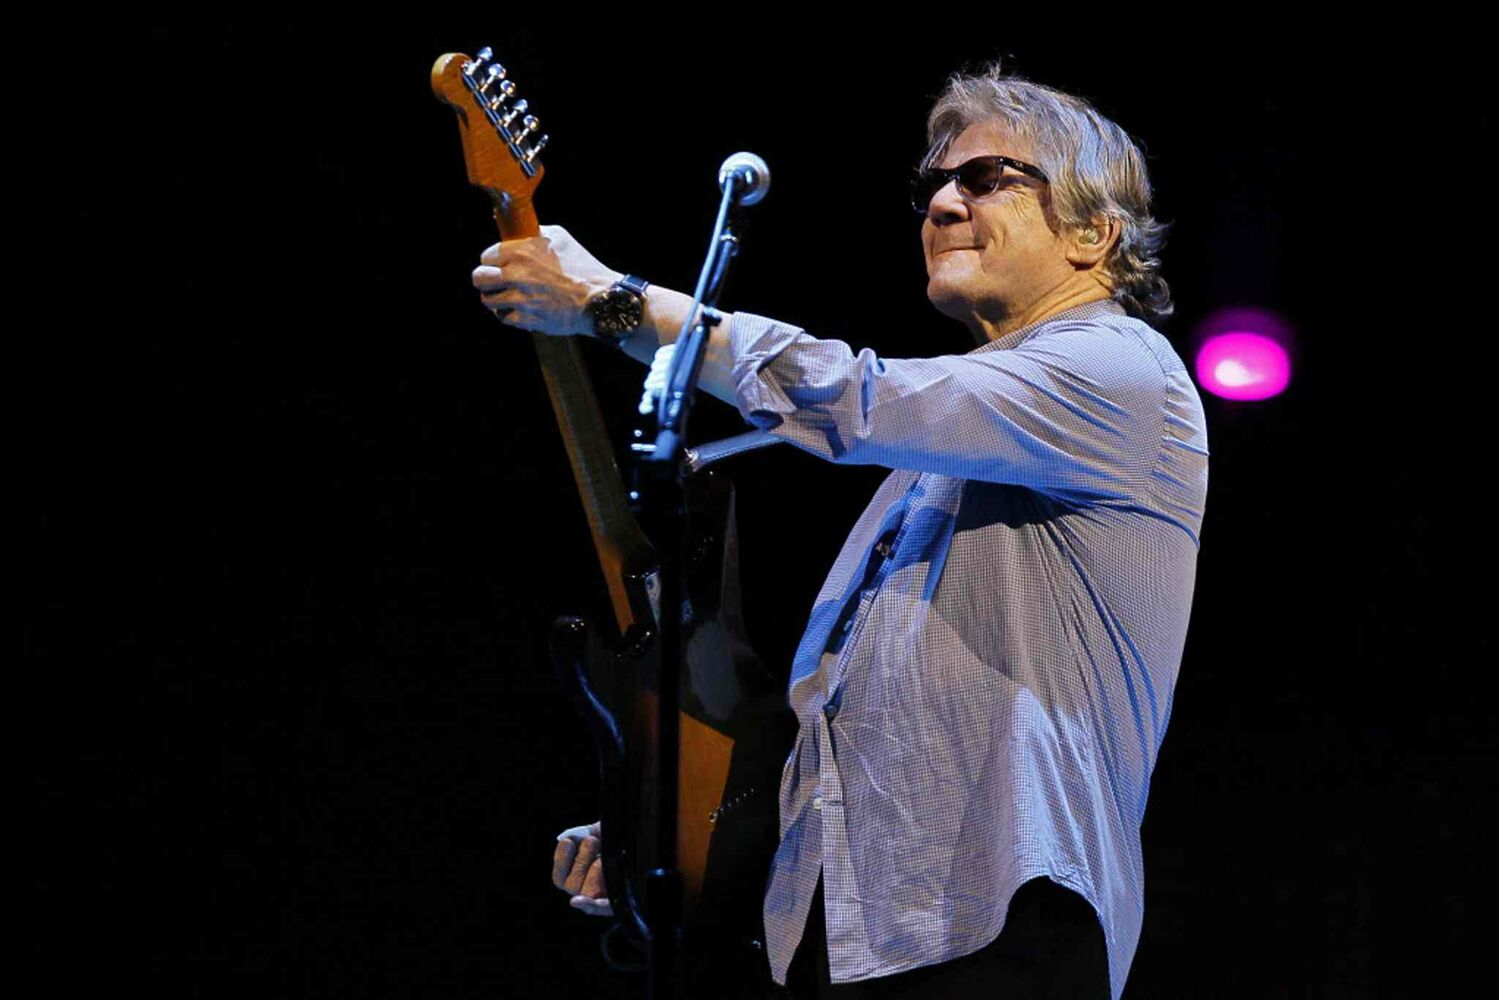 Steve Miller showing off some classic rock star moves.